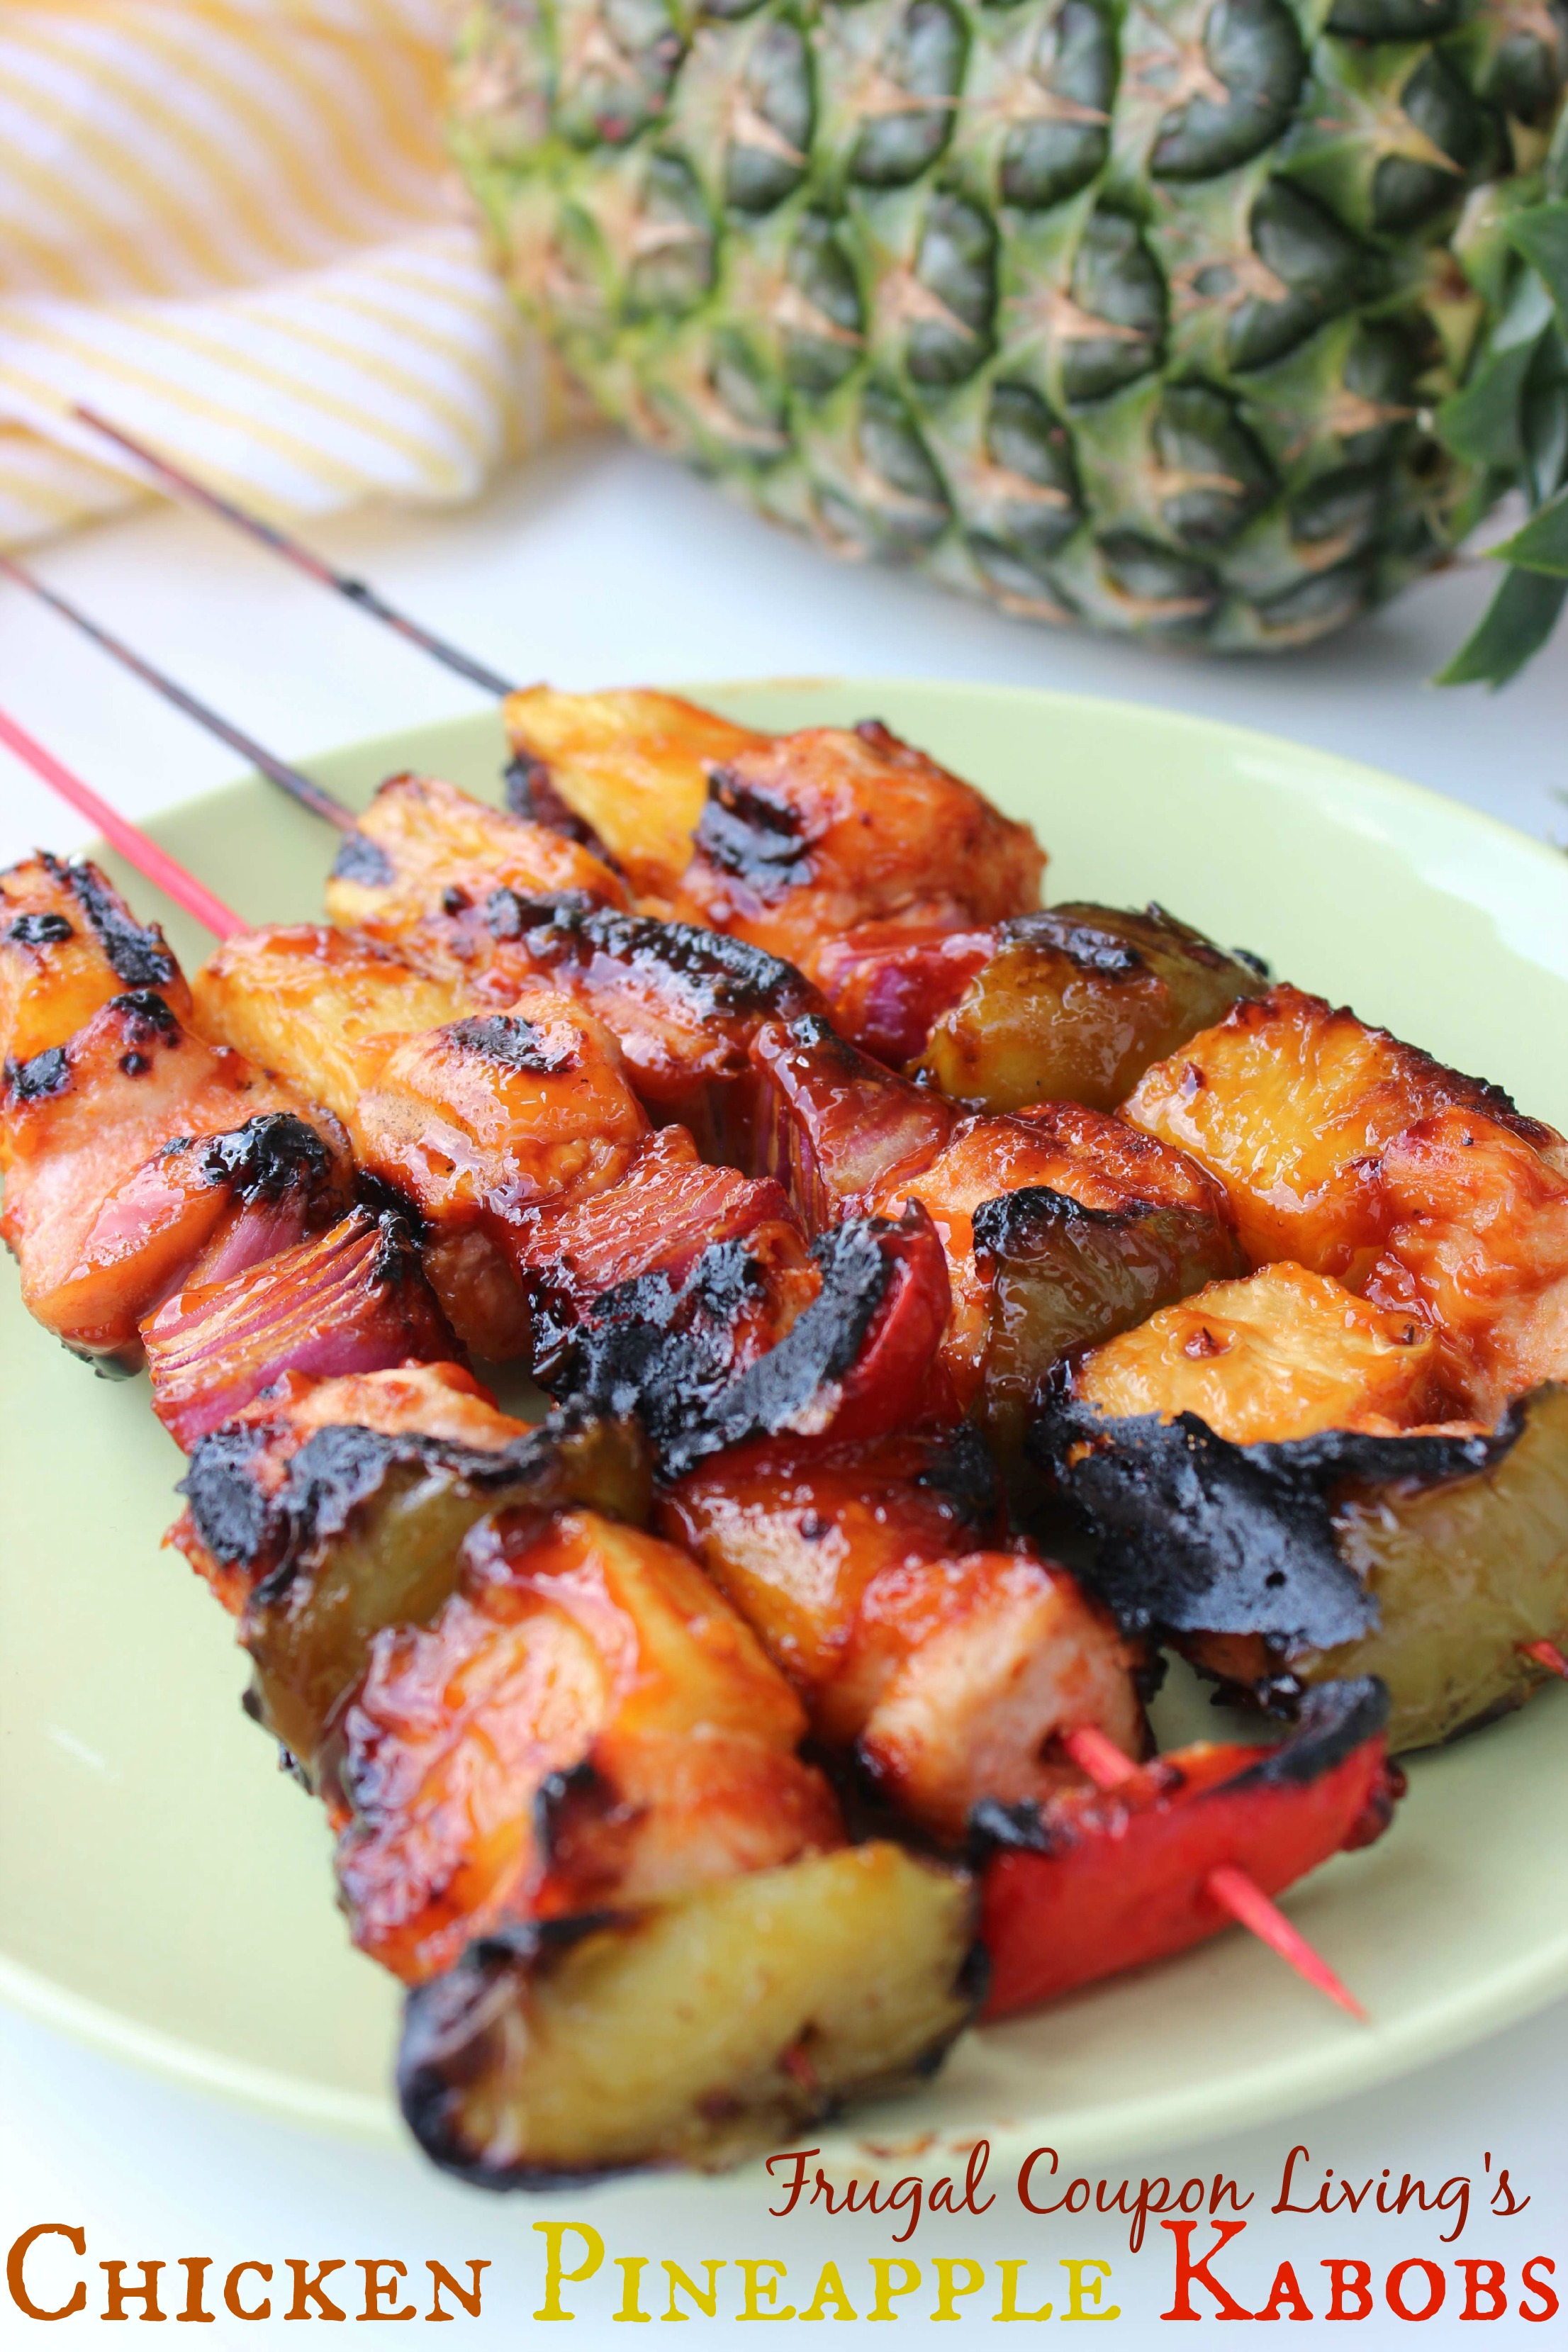 chicken-pineapple-kabobs-frugal-coupon-living